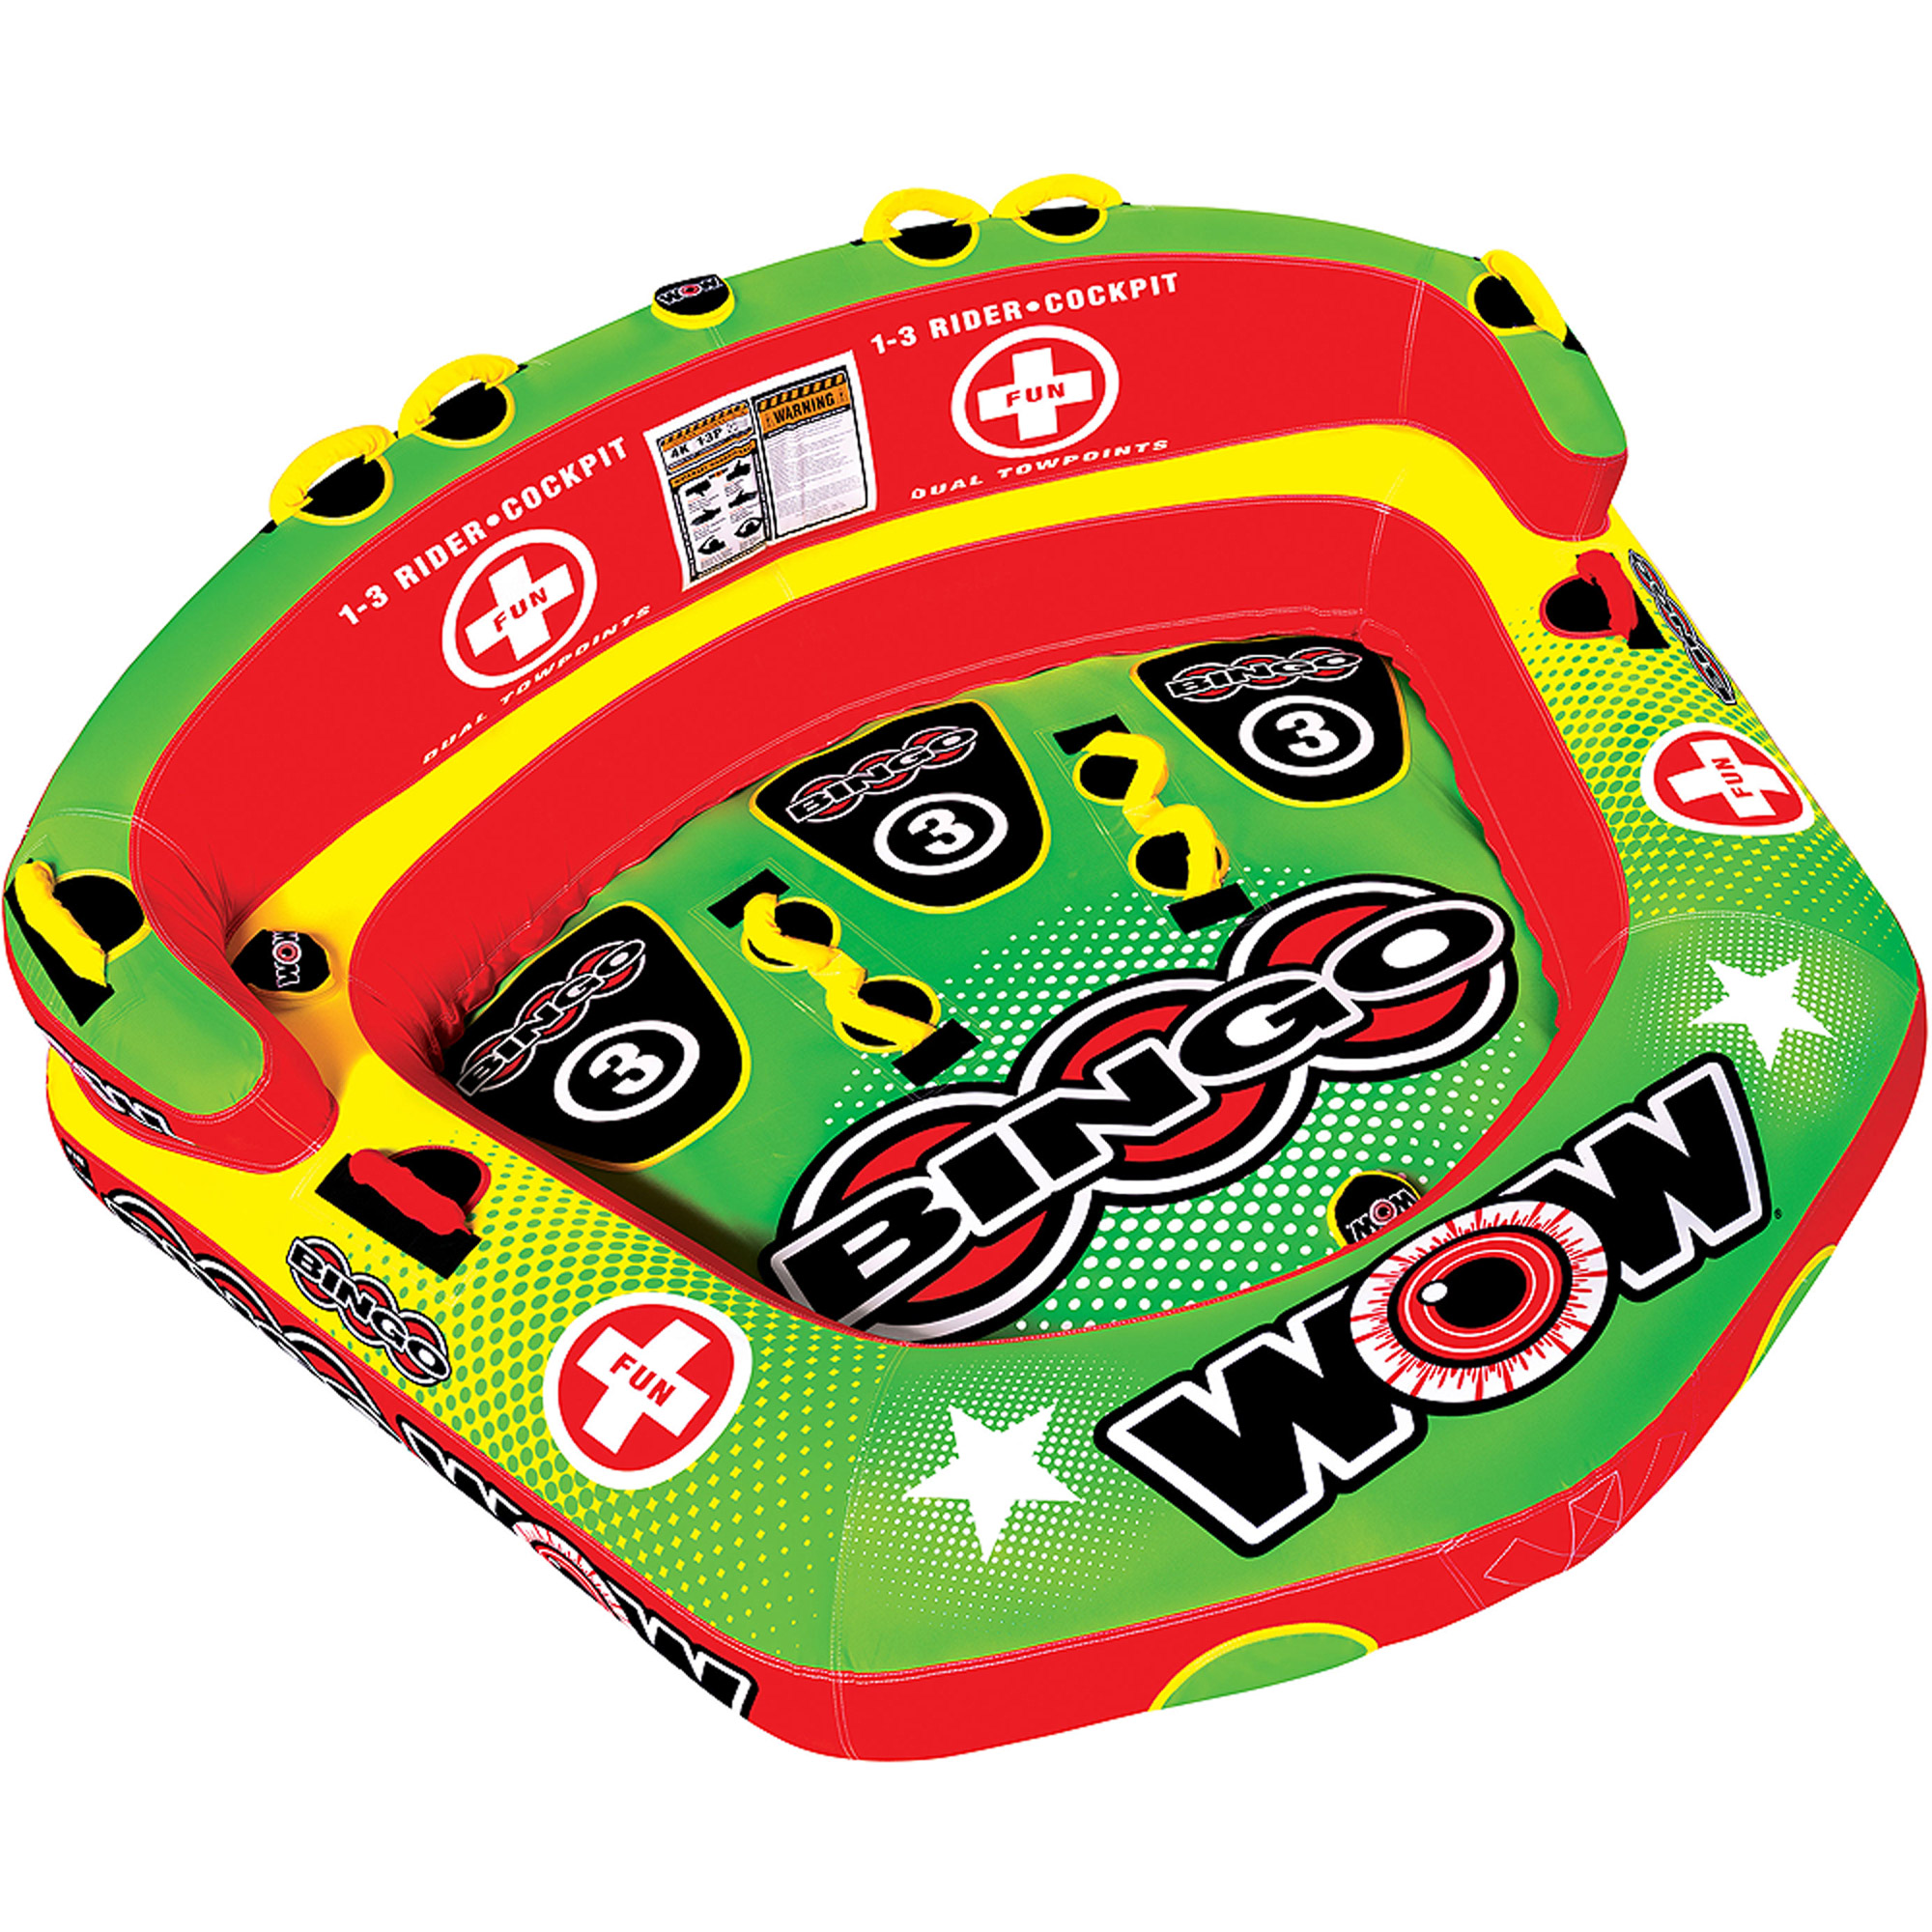 WOW Bingo Towable, 3 Rider